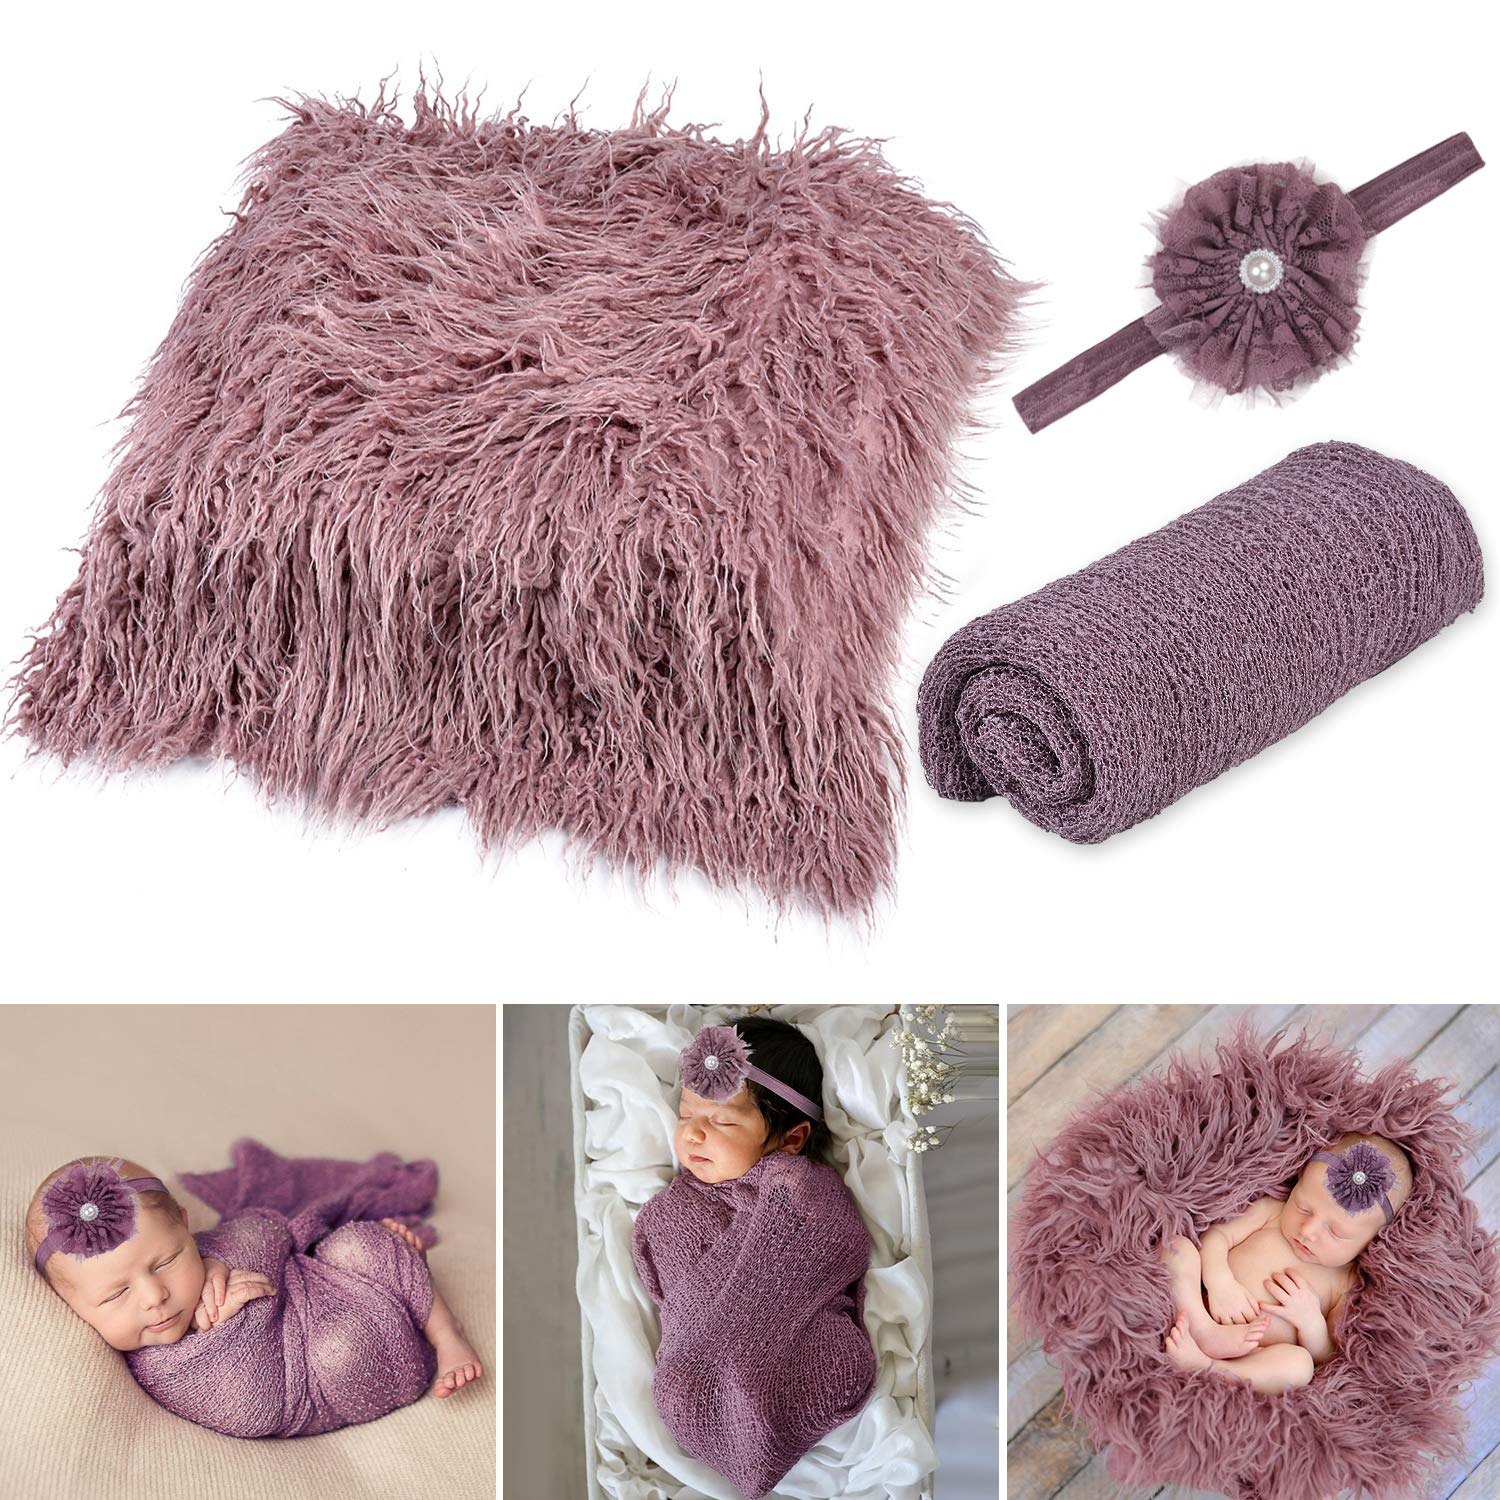 Baby Photo Props Newborn,Aniwon 3PCS Long Ripple Newborn Photography Wraps Blanket Swaddle Wrap Infant Outfits Soft Photography Mat Rug with Baby Headband for Baby Boys Girls